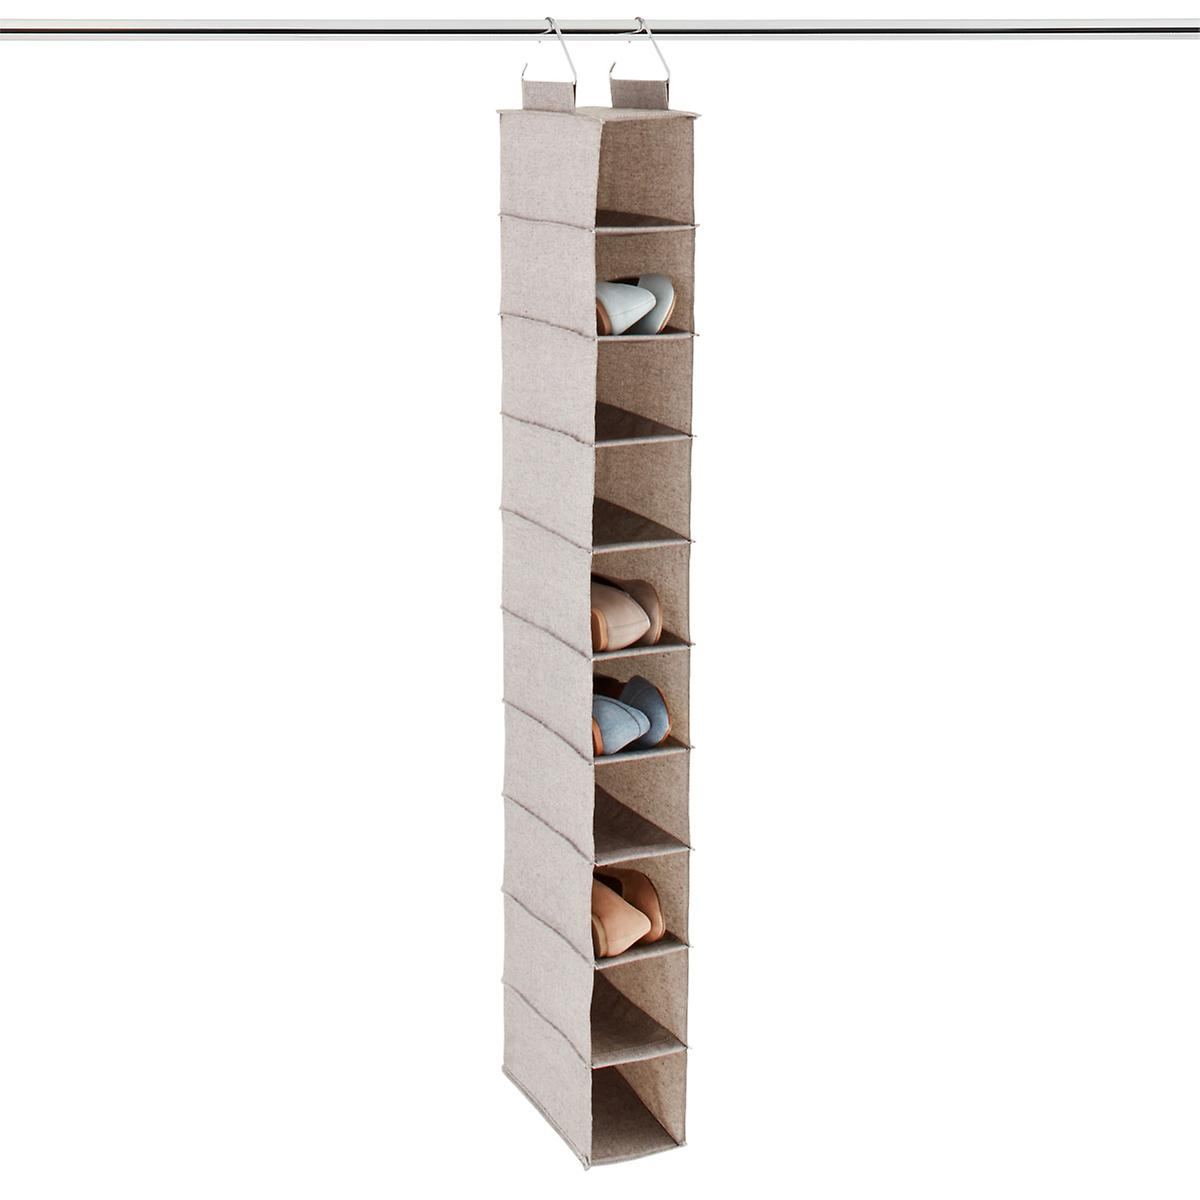 10 Compartment Hanging Shoe Organizer